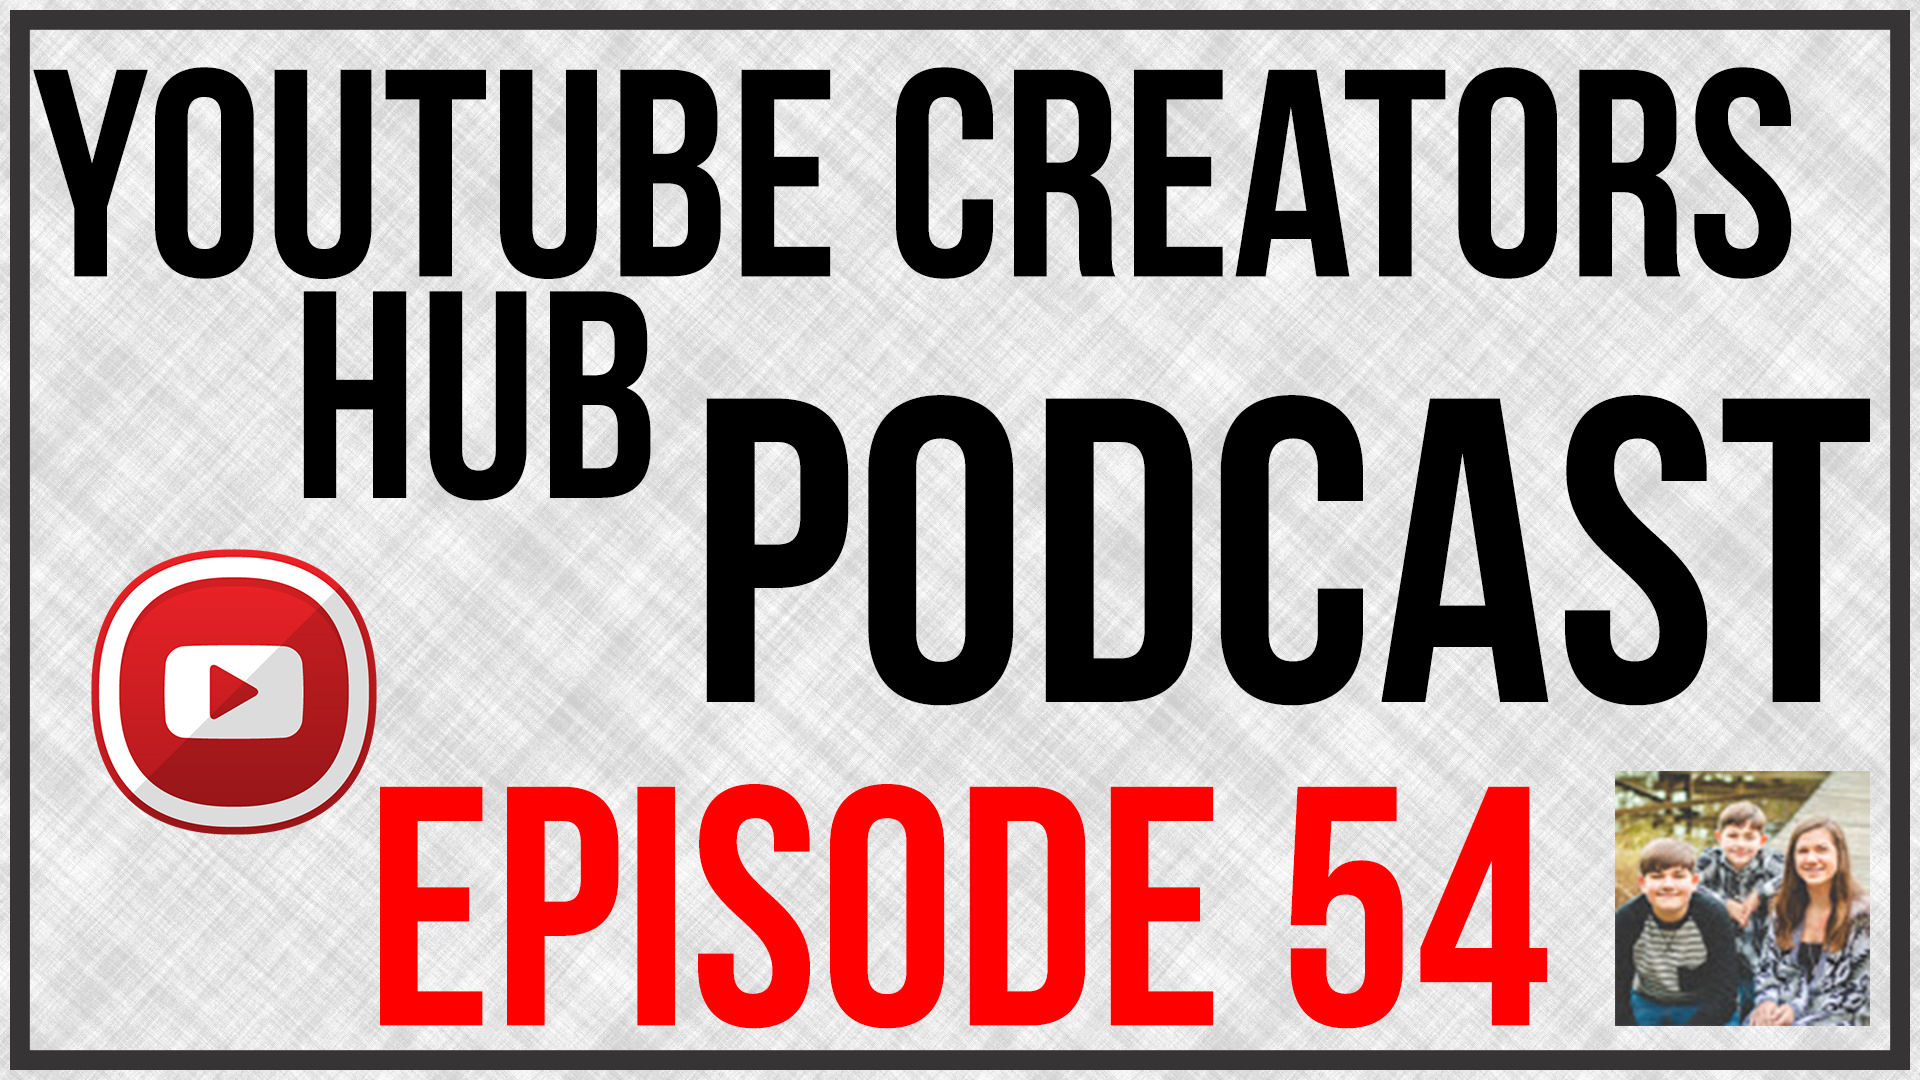 YouTube Creators Hub Podcast Episode 054